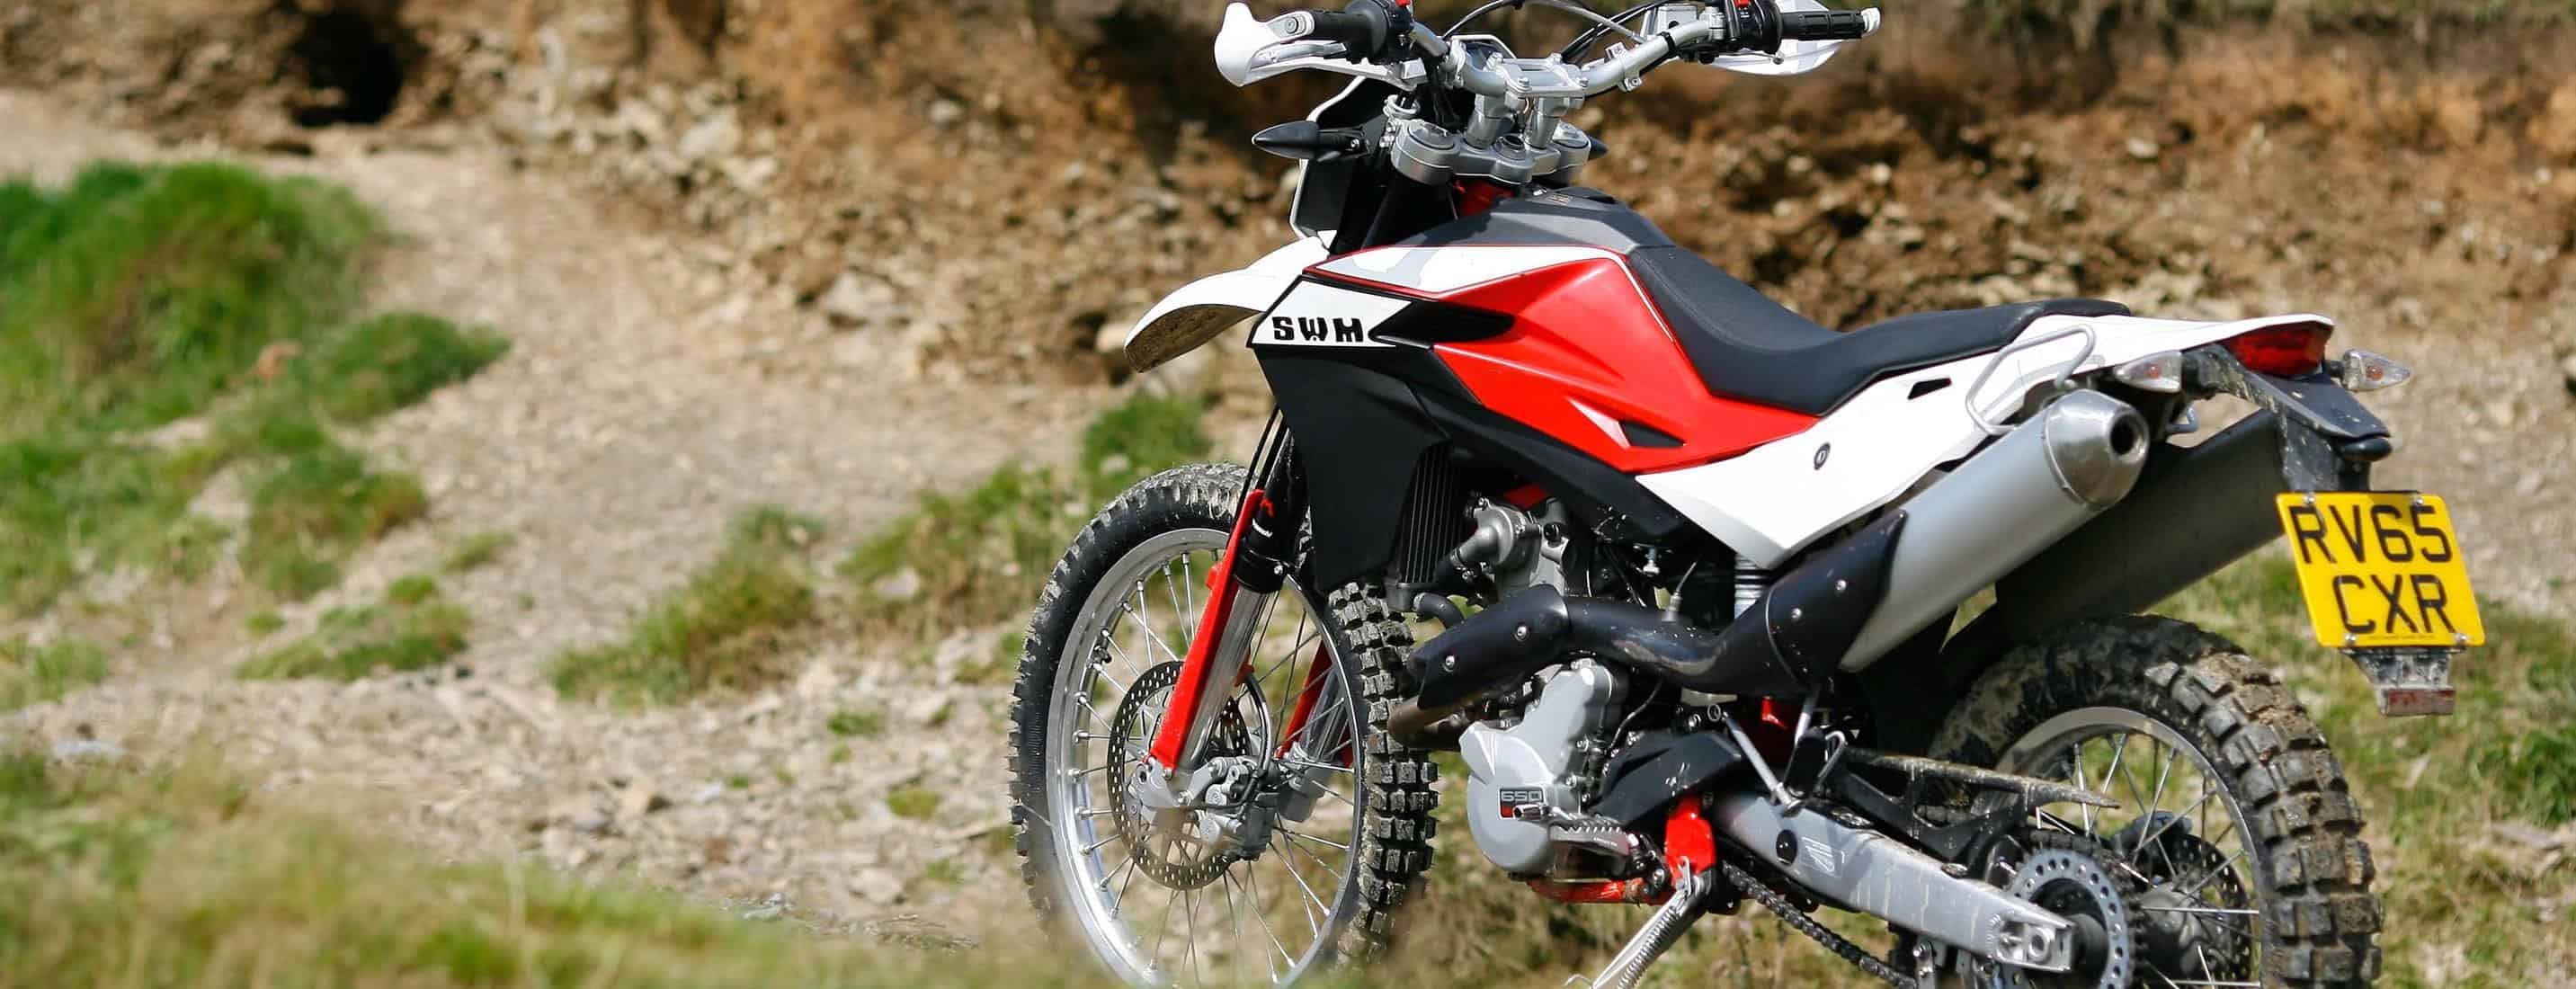 SWM are back, with a neat 600cc thumper trailie